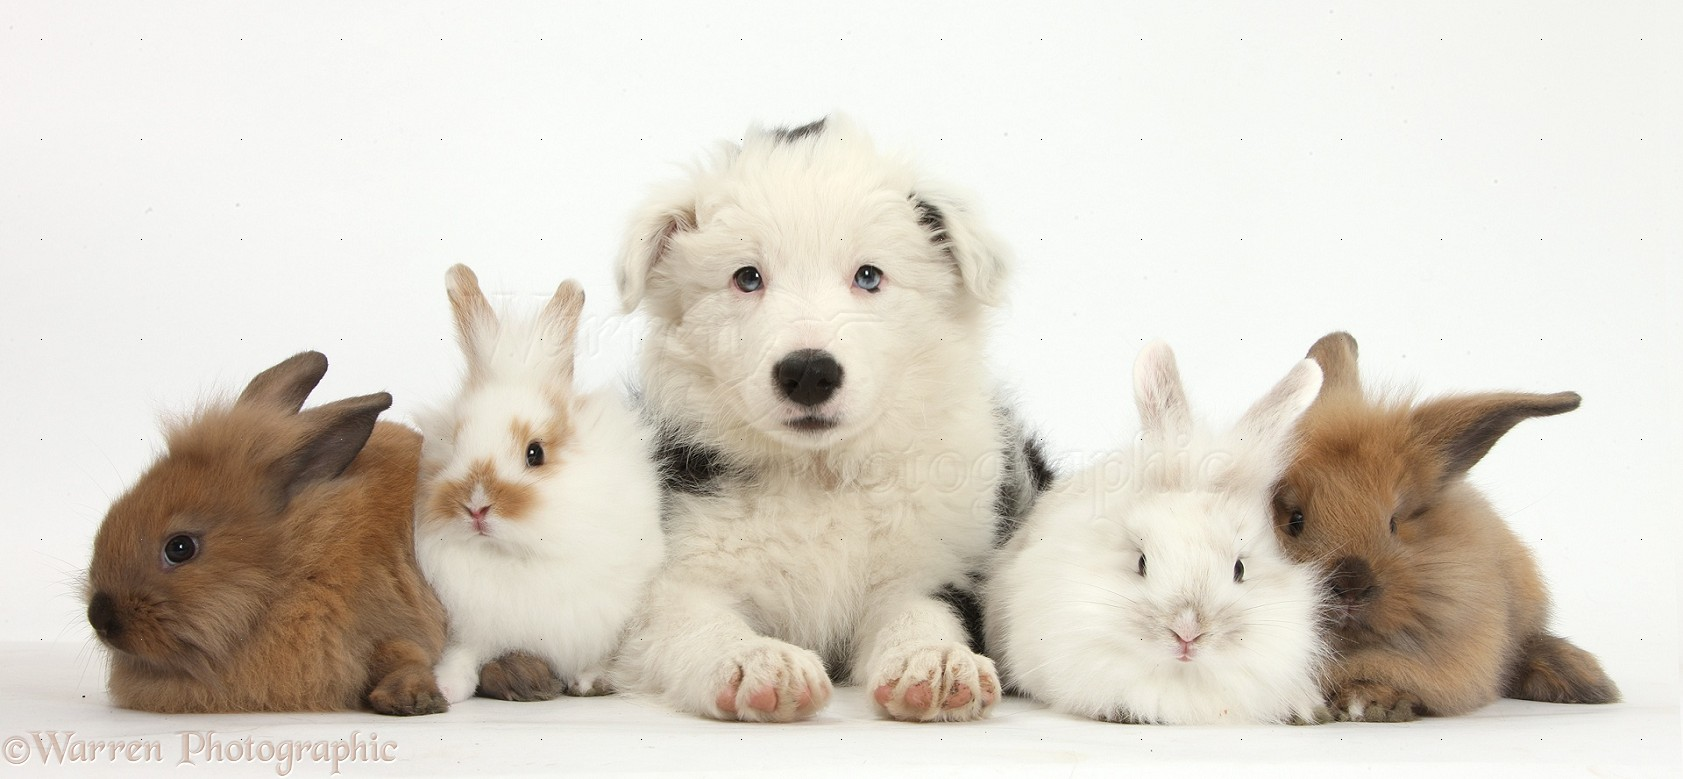 Pets Border Collie Pup With Baby Bunnies Photo Wp35750